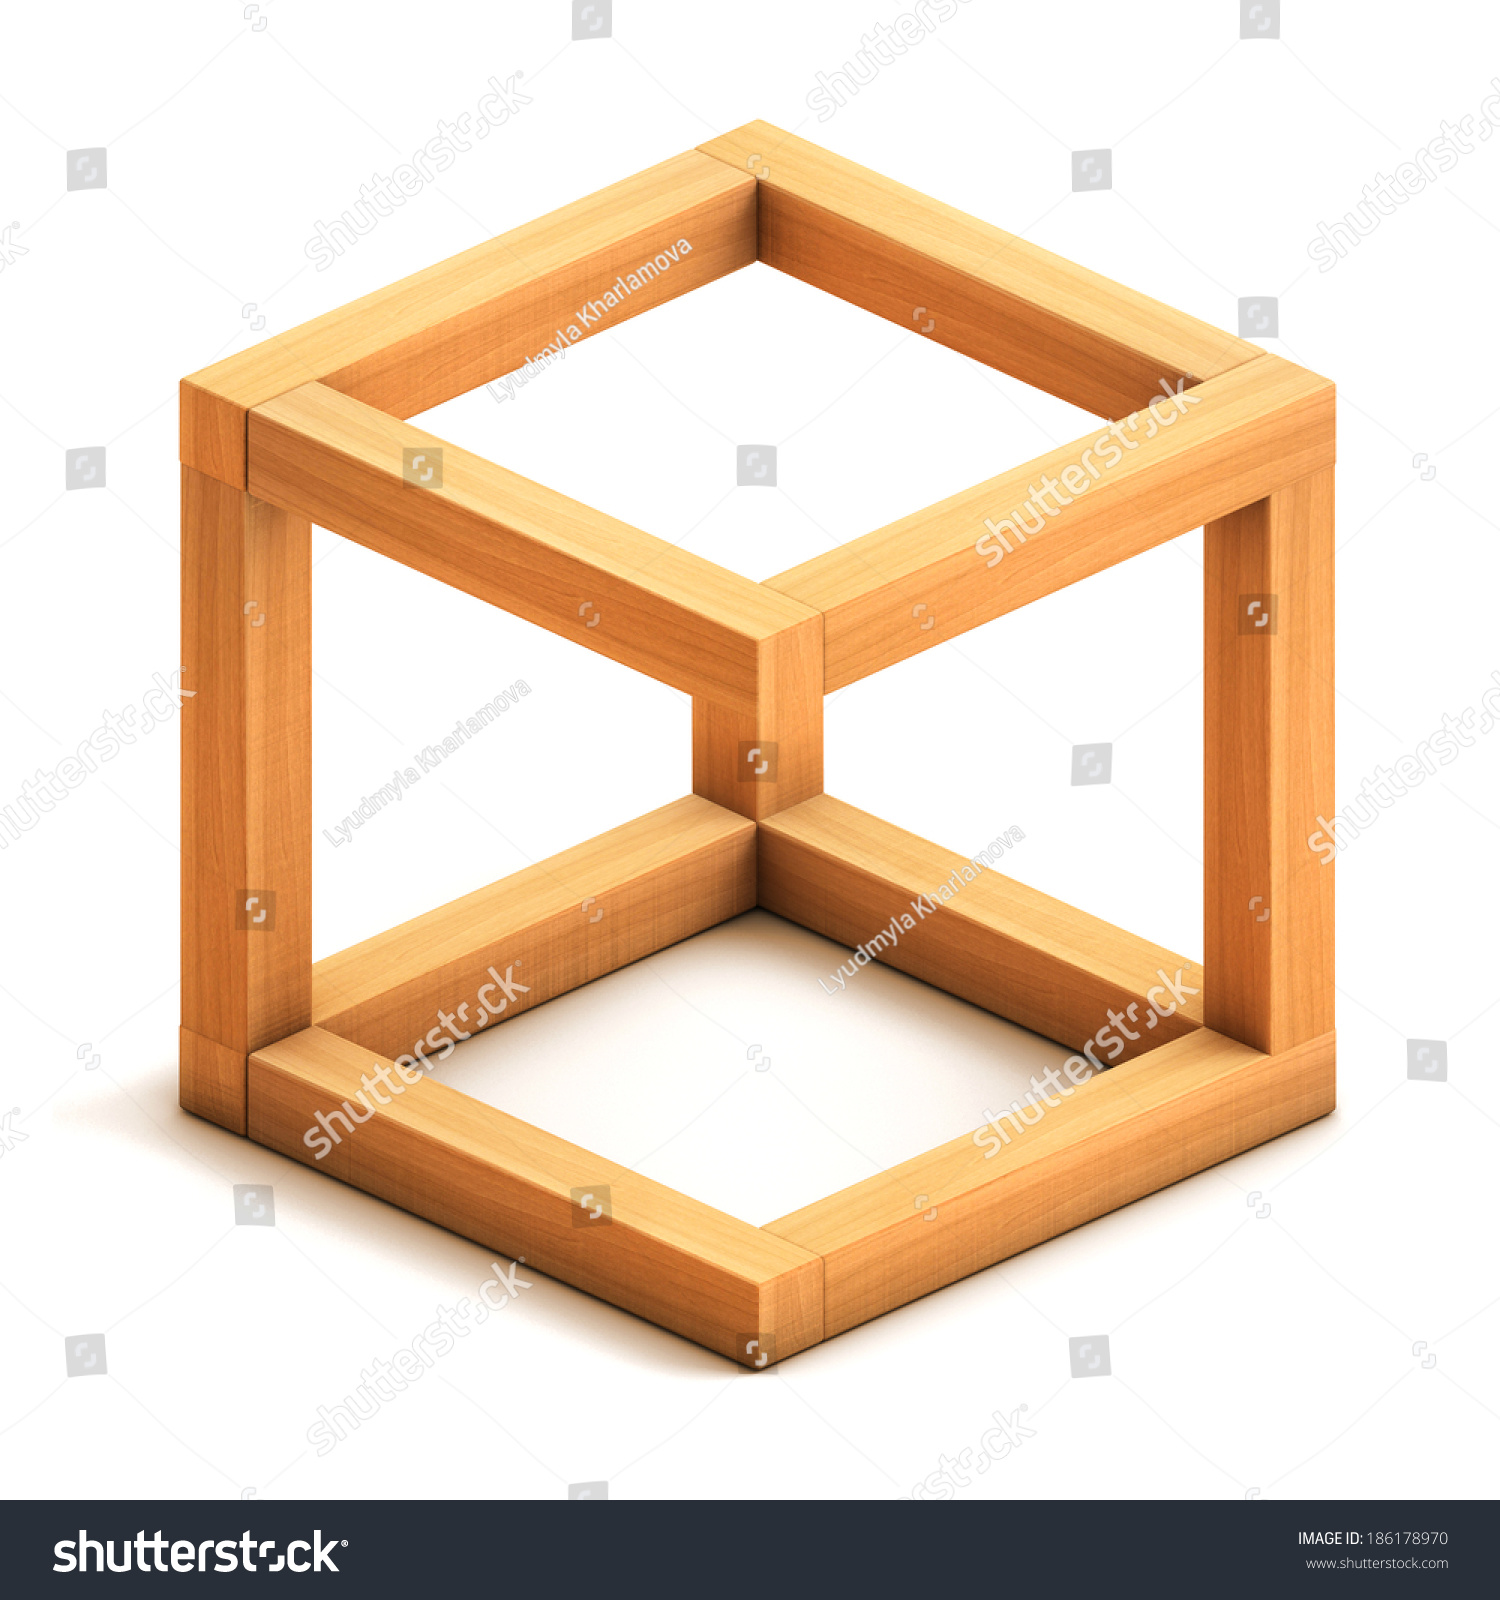 optical illusion box impossible wooden 3d figure geometrical isolated render background shutterstock